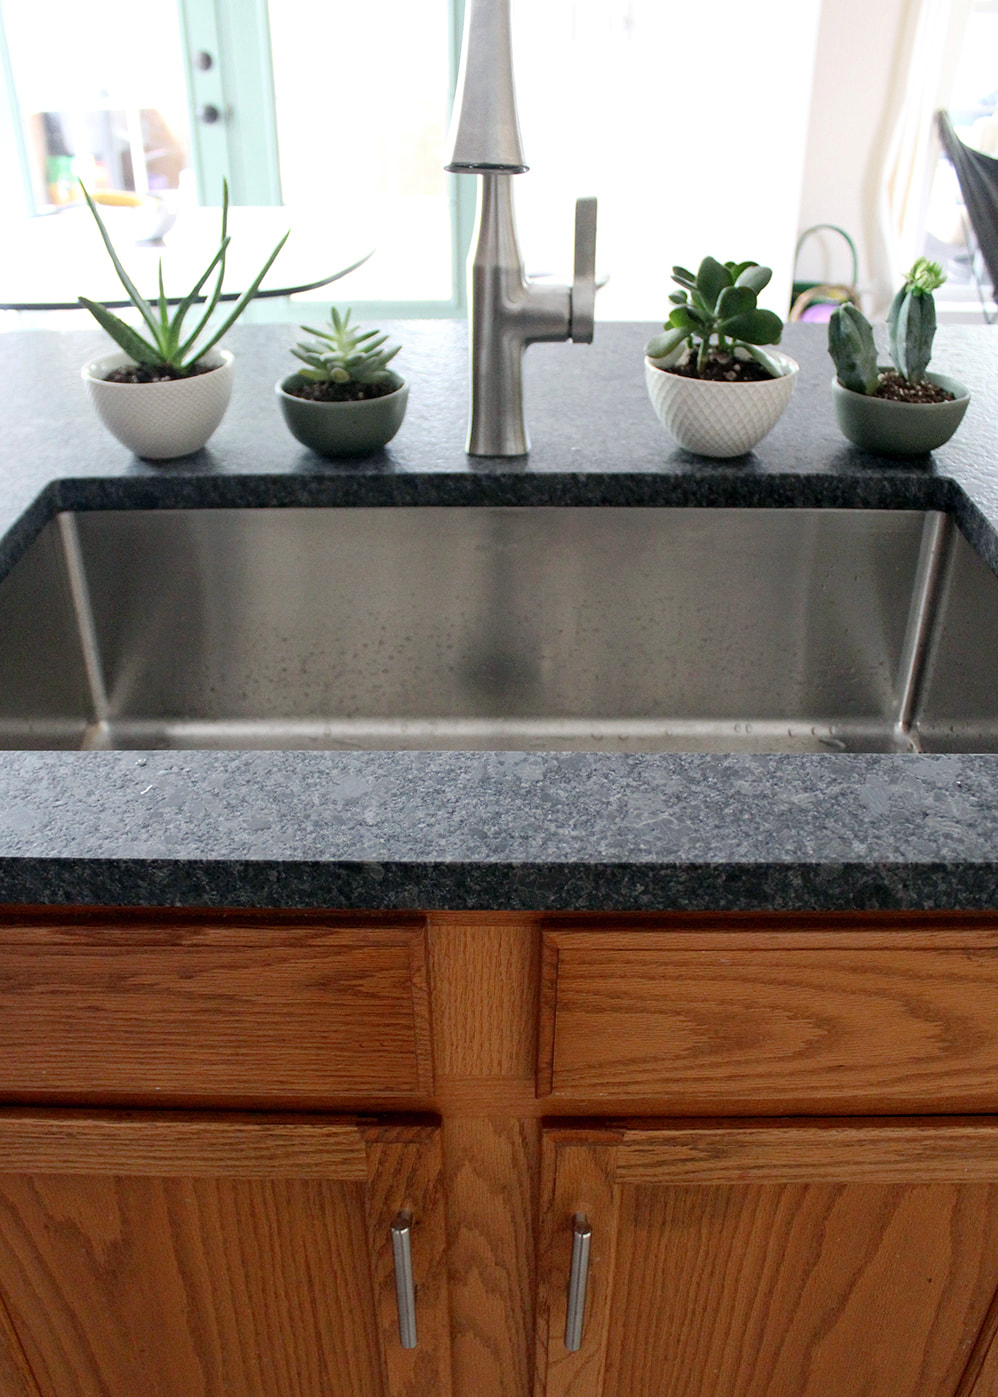 Picked Leathered Granite Countertops